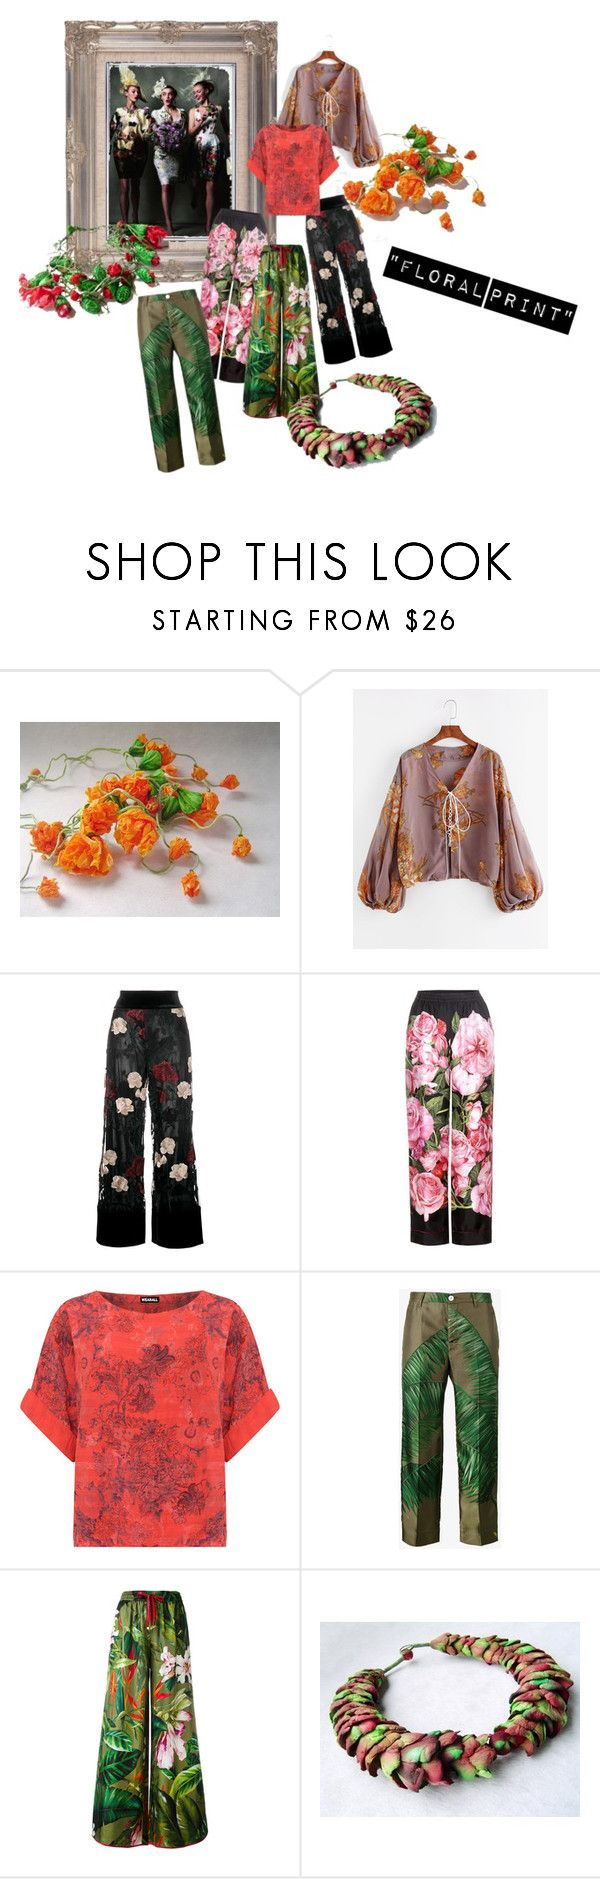 """""""Floral Print"""" by renterodesigns on Polyvore featuring moda, STELLA McCARTNEY, Ganni, Dolce&Gabbana, WearAll, F.R.S For Restless Sleepers, ALMERIA y plus size clothing"""